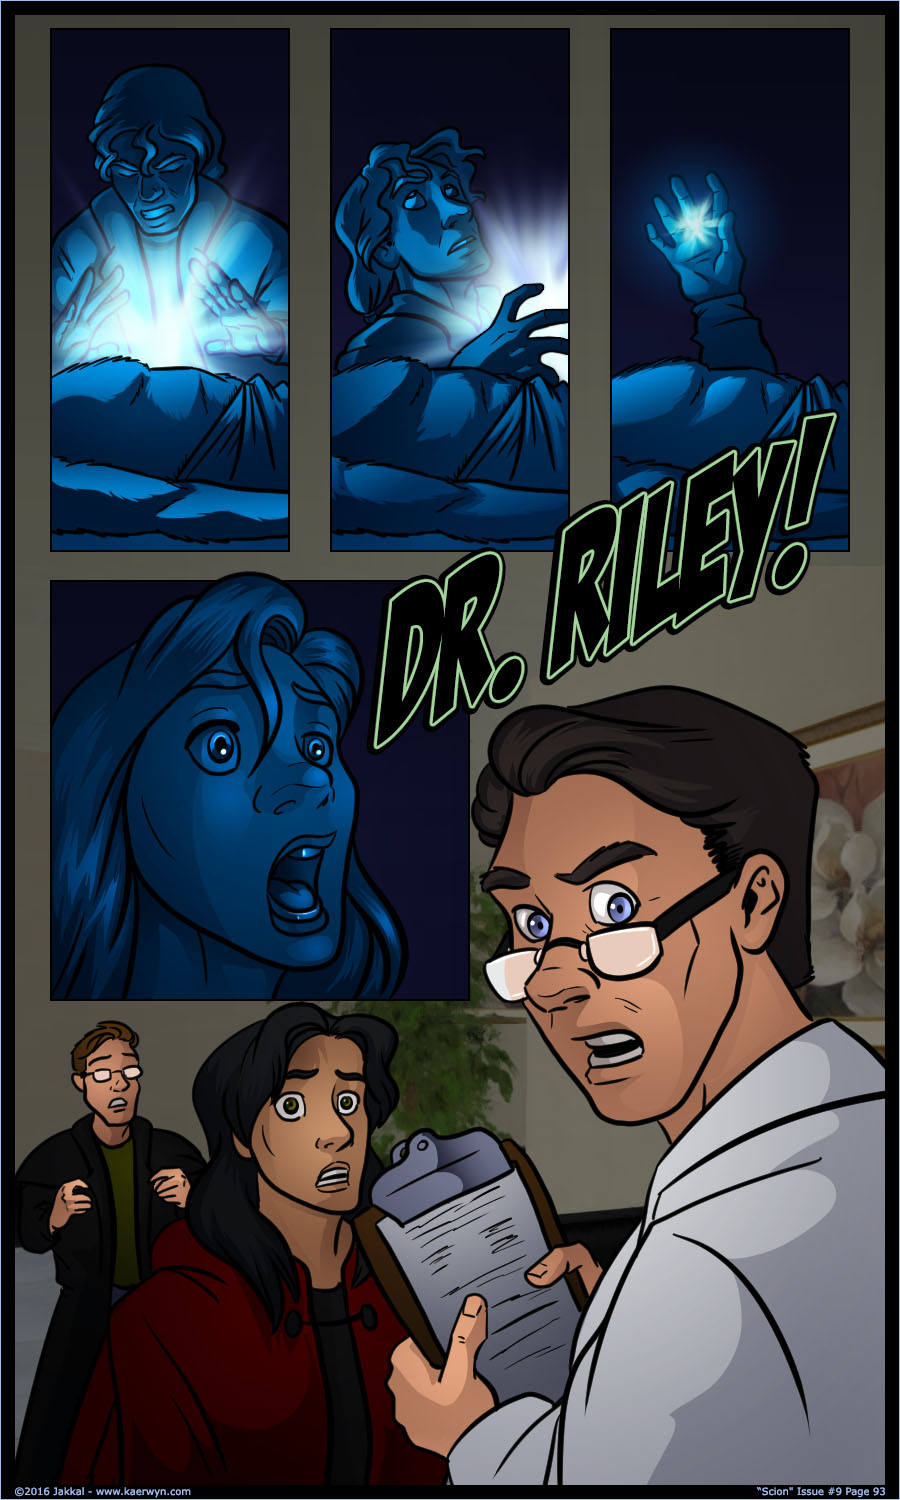 Issue 9 Page 93